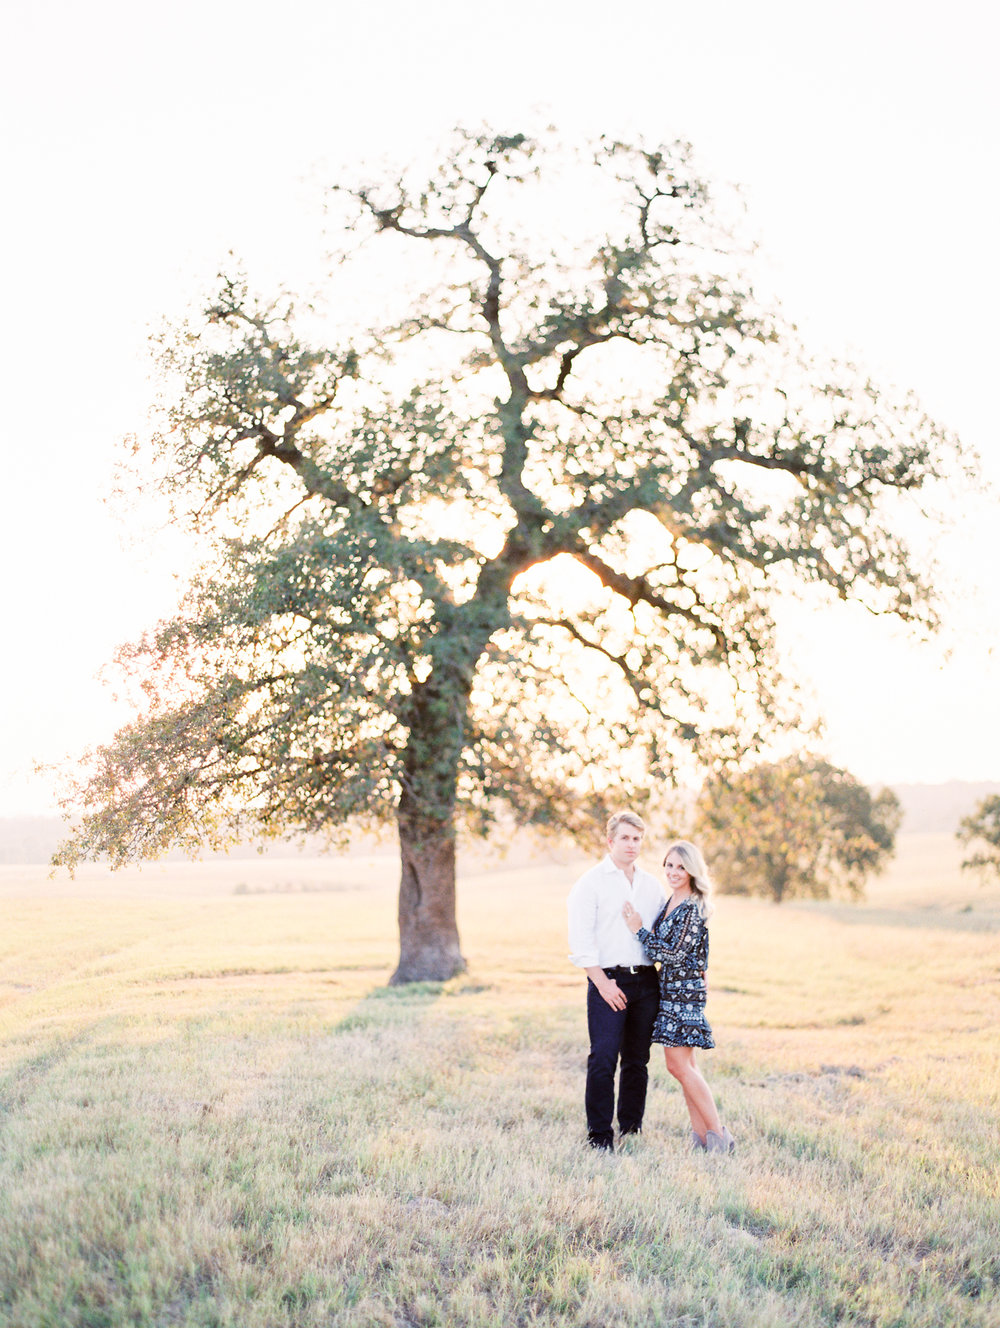 Lauren+John+Engaged+TX-101.jpg